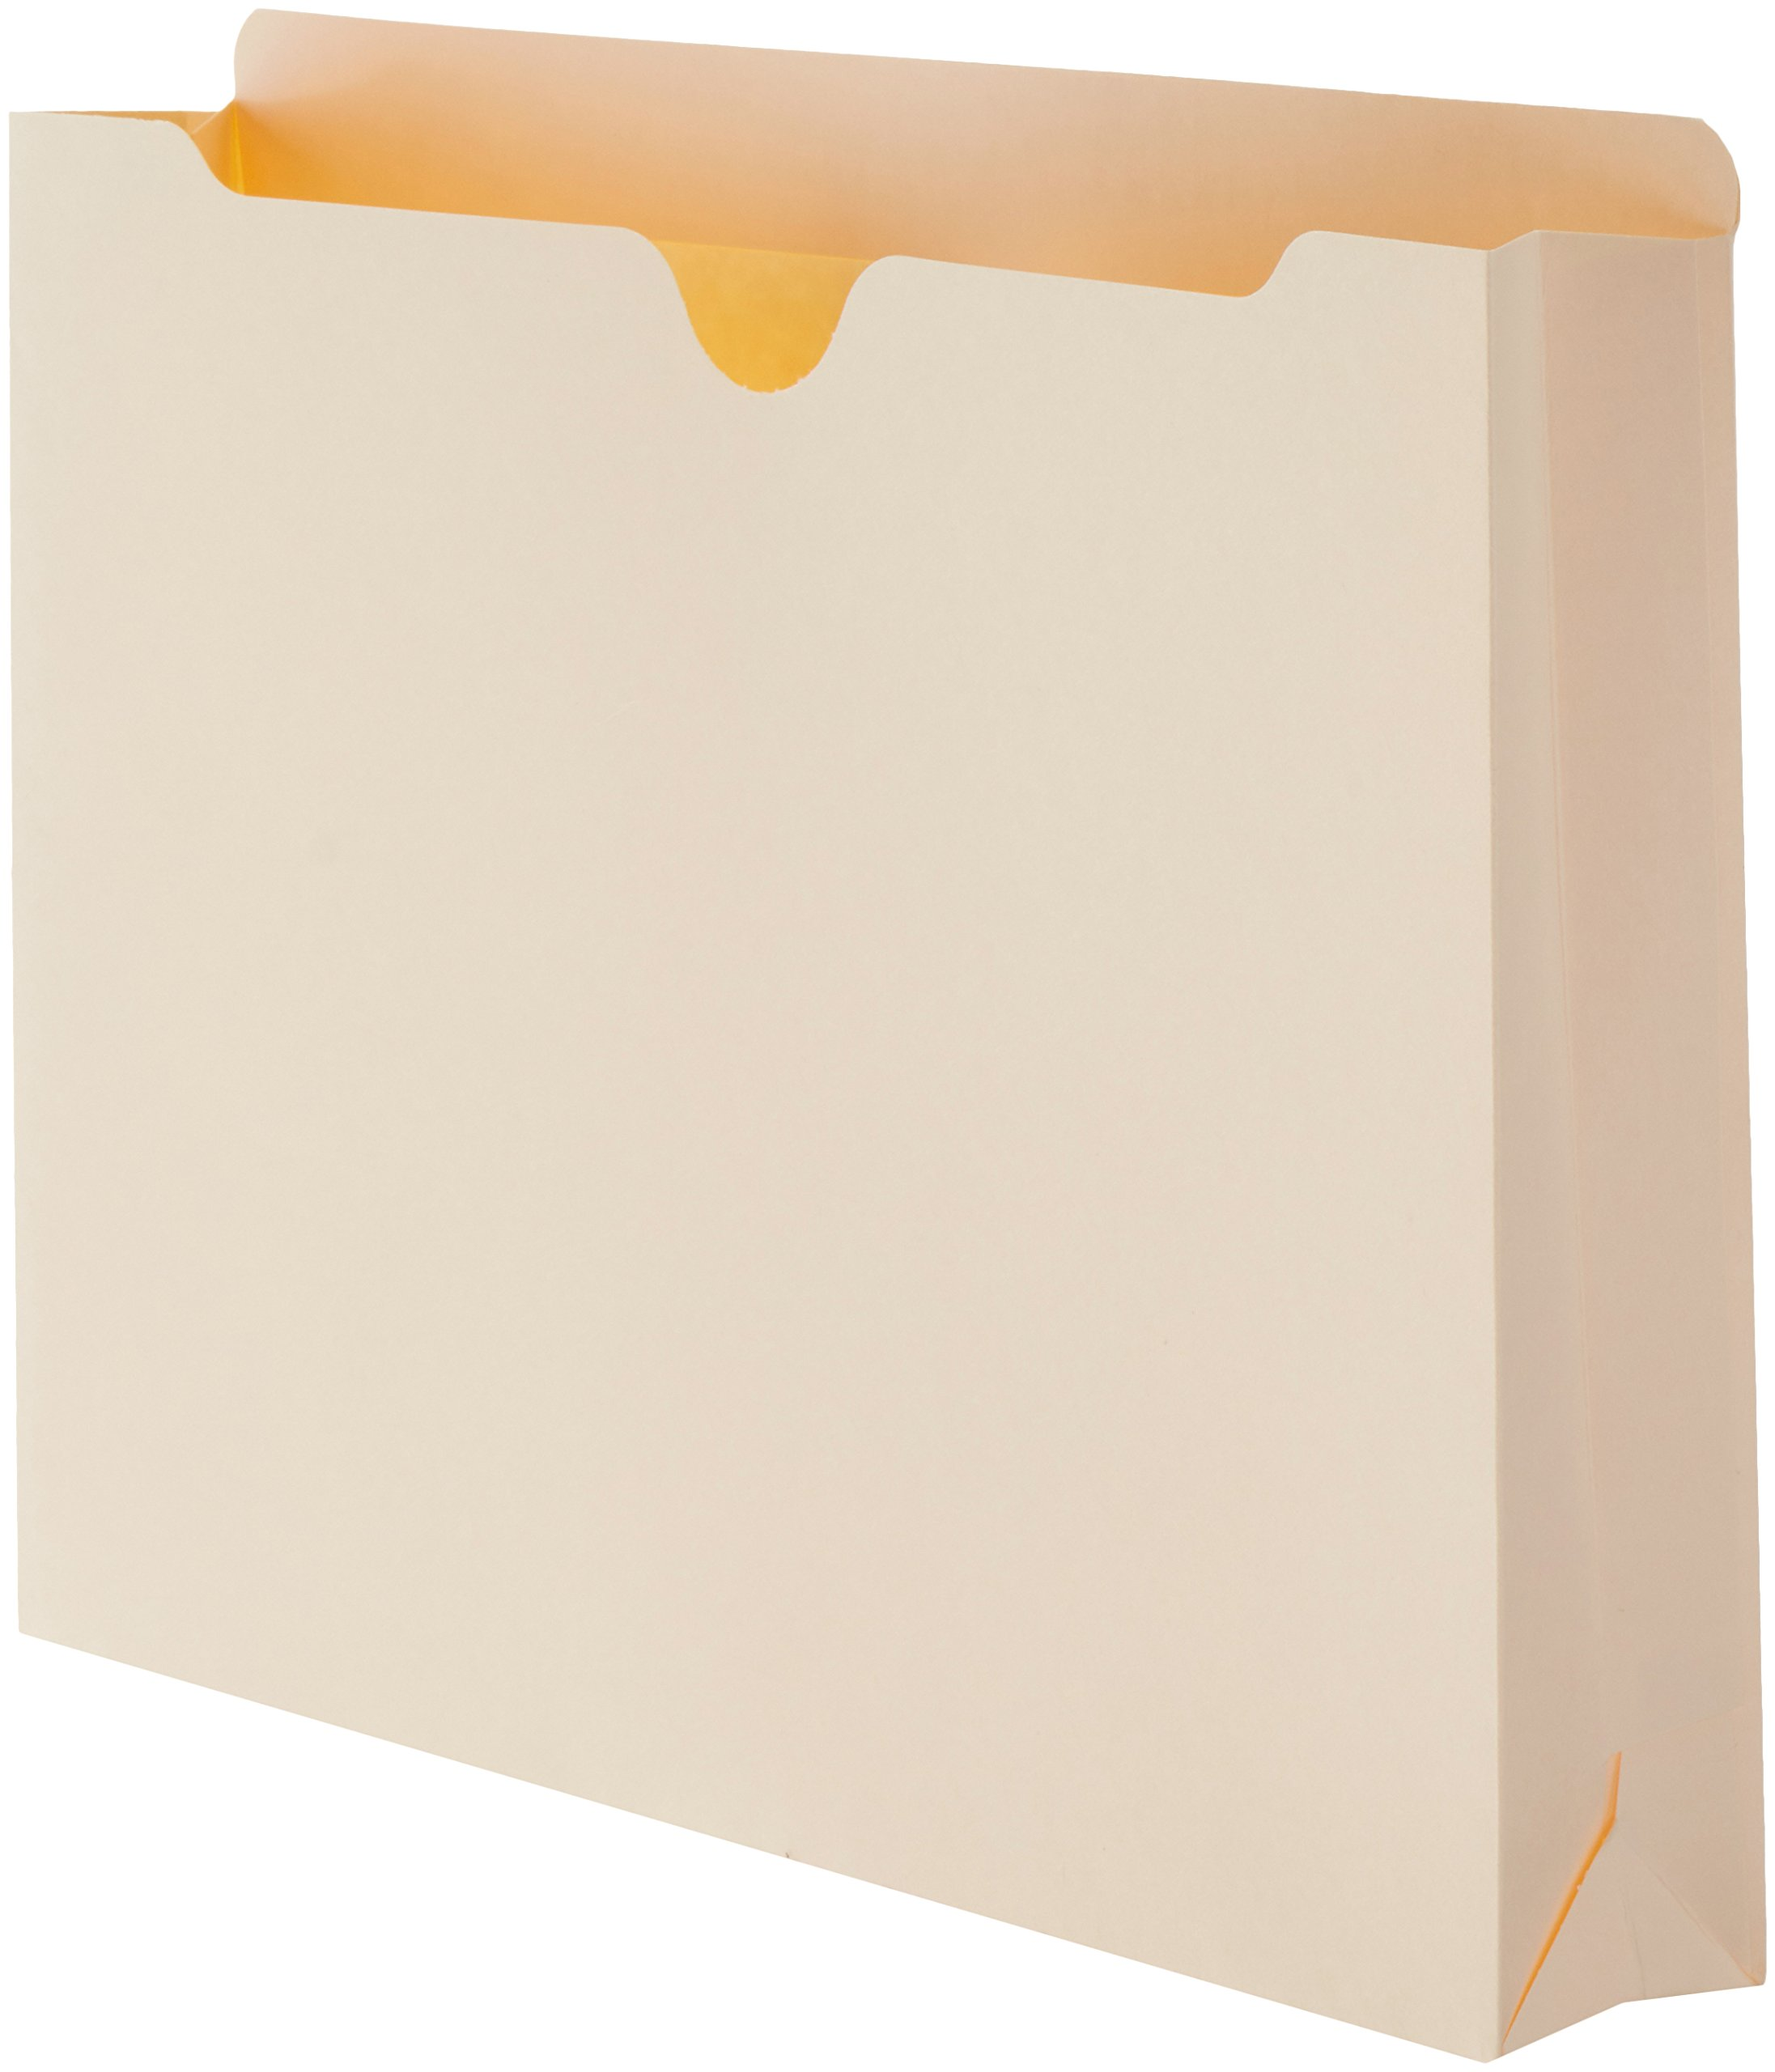 AmazonBasics File Jacket, Reinforced Straight-Cut Tab, 2-Inch Expansion, Letter Size, Manila, 50-Pack